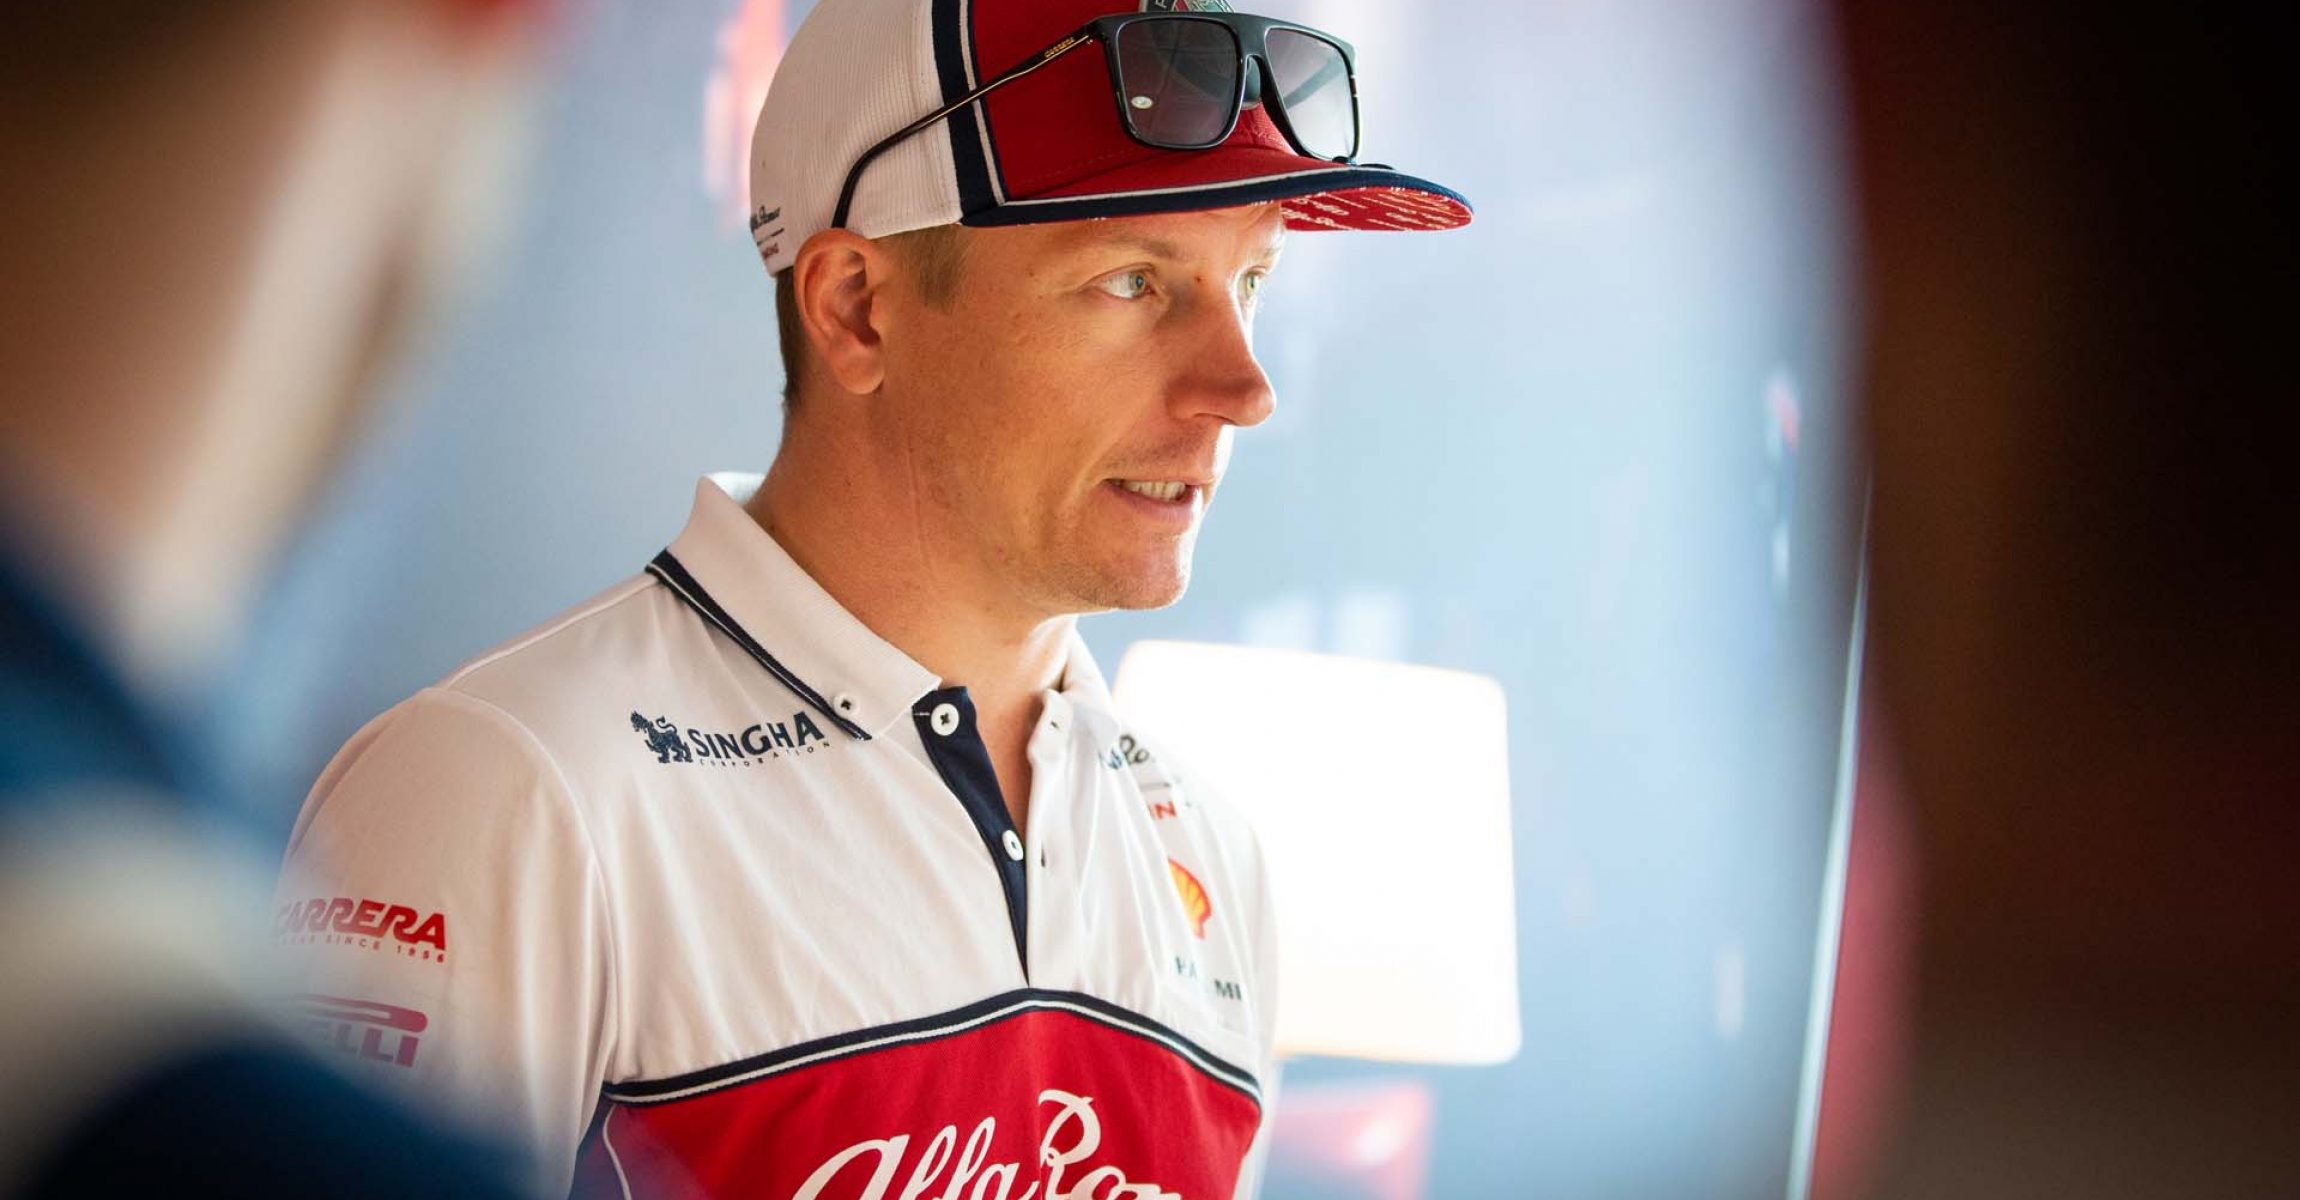 meet and greet with RAIKKONEN Kimi Räikkönen (fin), Alfa Romeo Racing C38, portrait during 2019 Formula 1 FIA world championship, Italy Grand Prix, at Monza from september 5 to 9  - Photo Antonin Vincent / DPPI